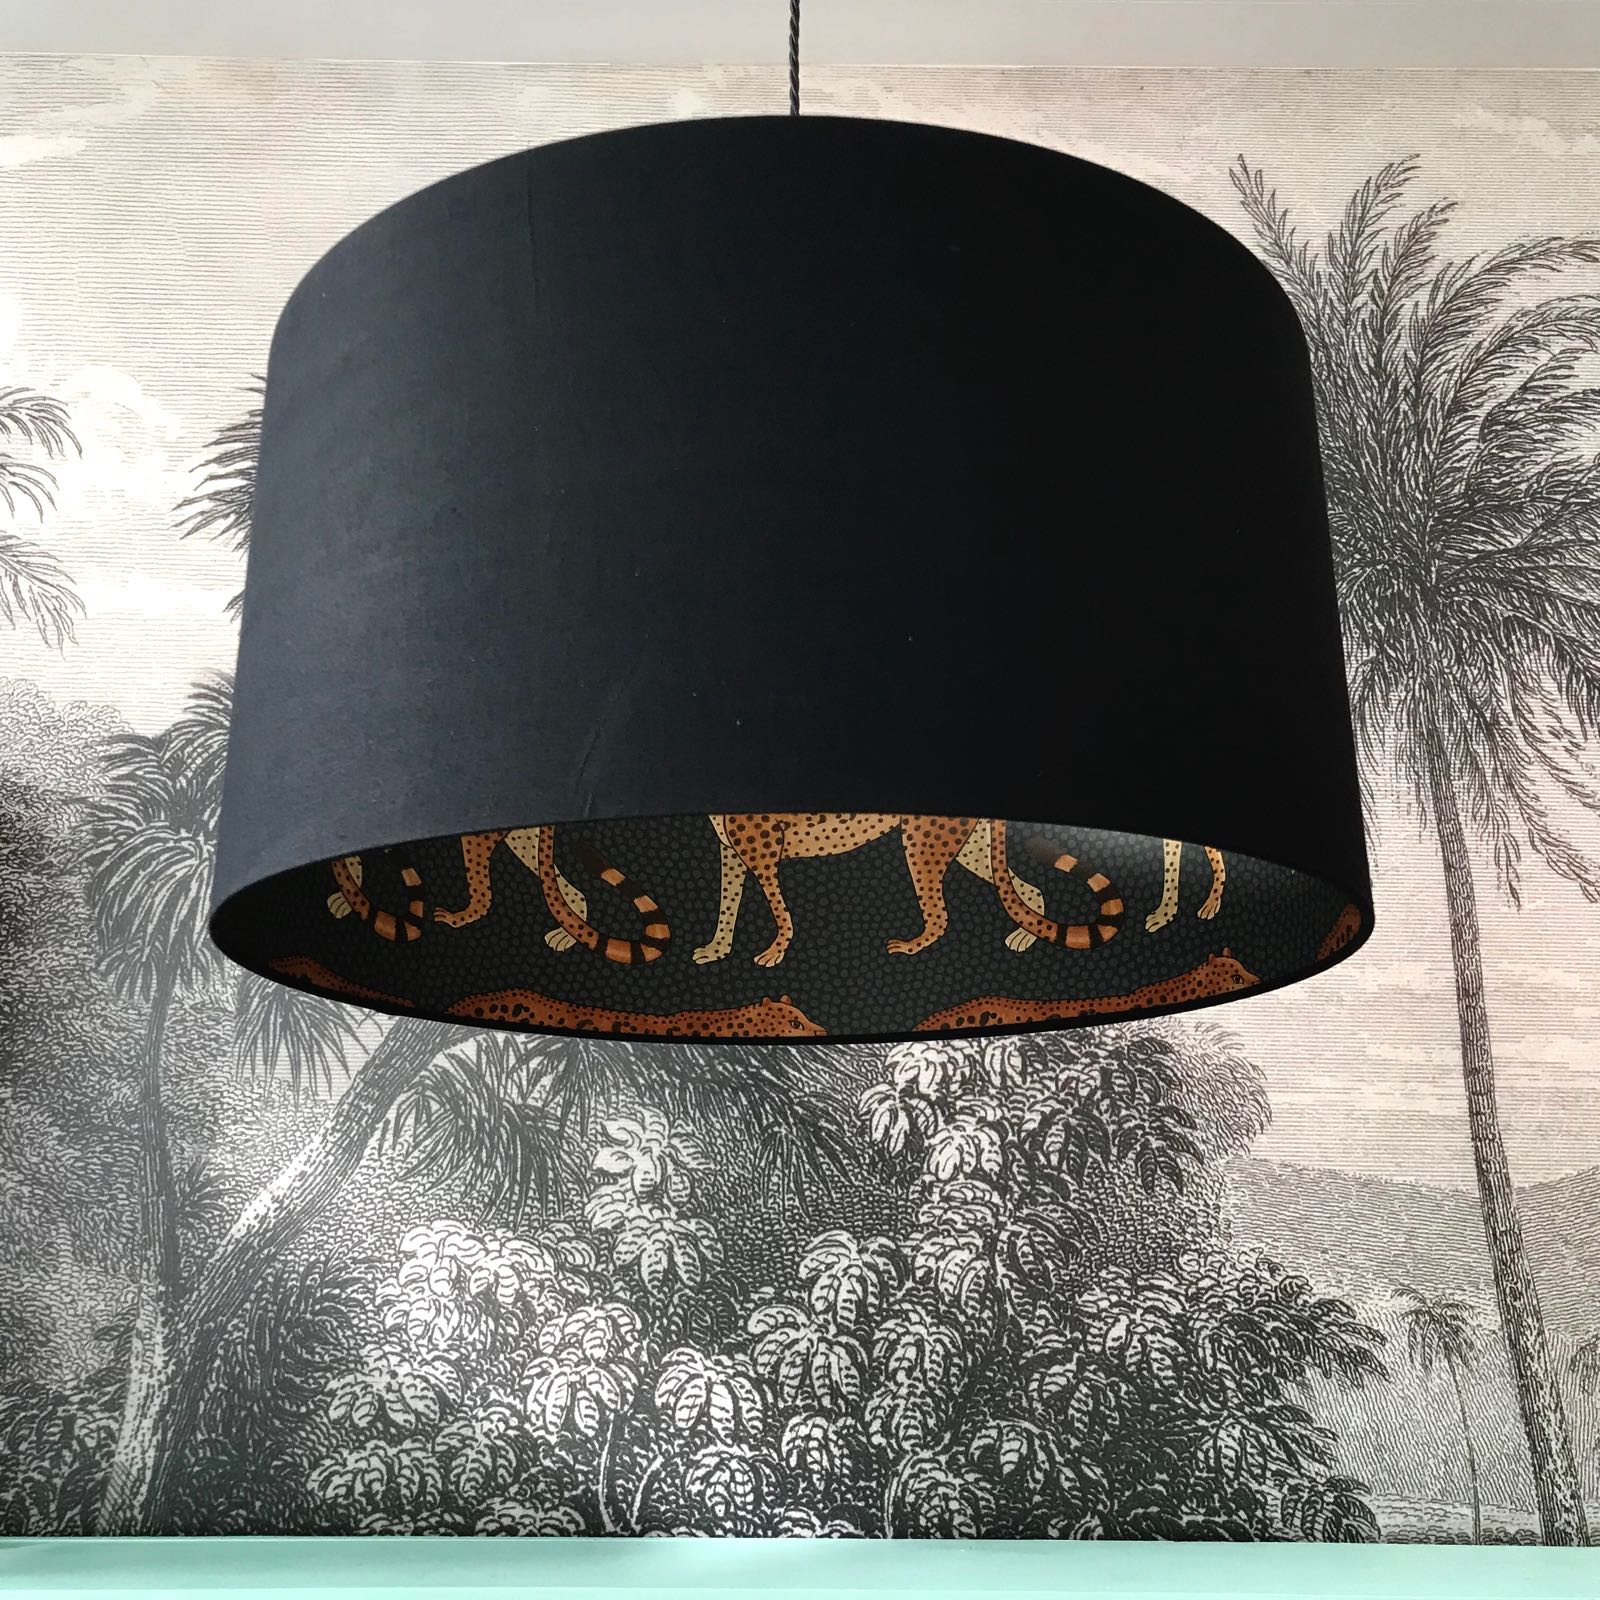 Leopard Walk Cole & Son Lampshade in Jet Black | Love Frankie